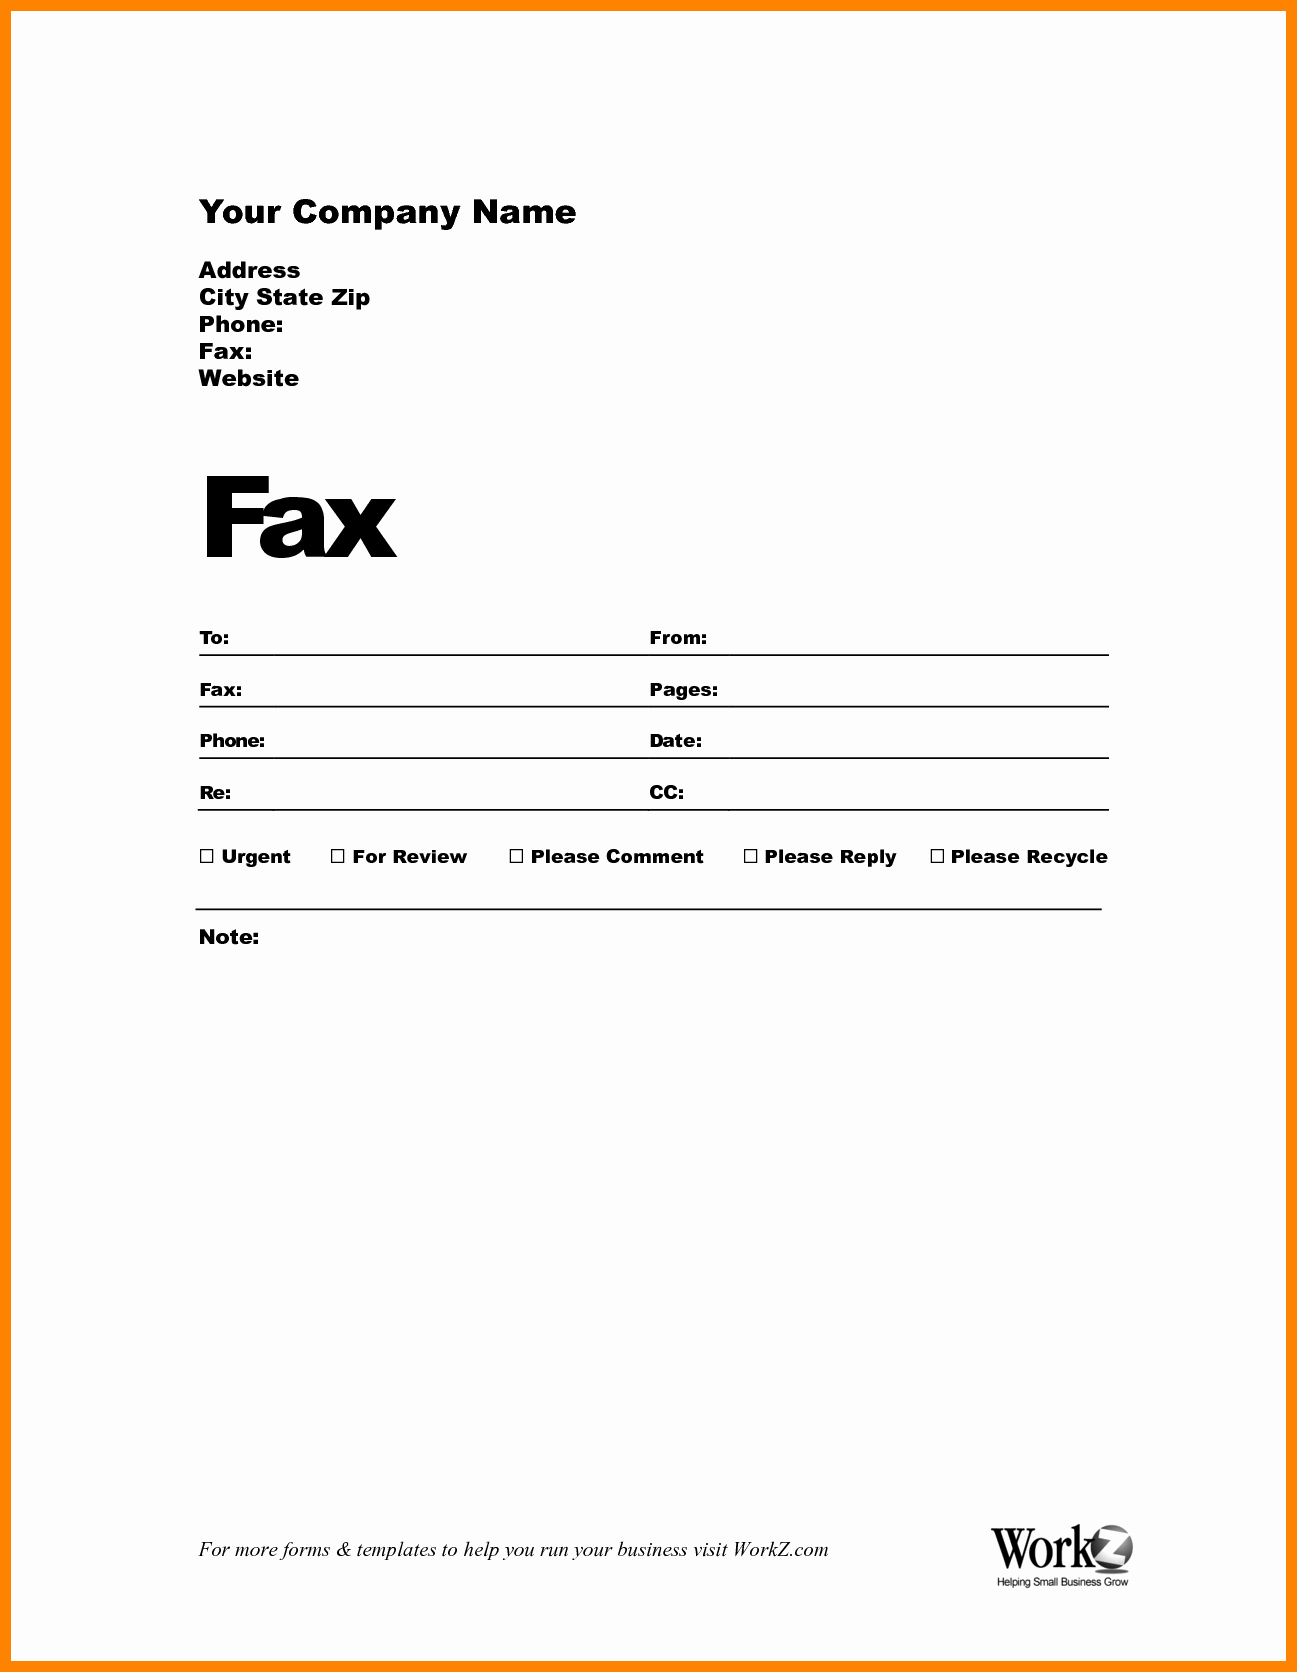 Professional Fax Cover Sheet Awesome 8 Medical Fax Cover Sheet Templates